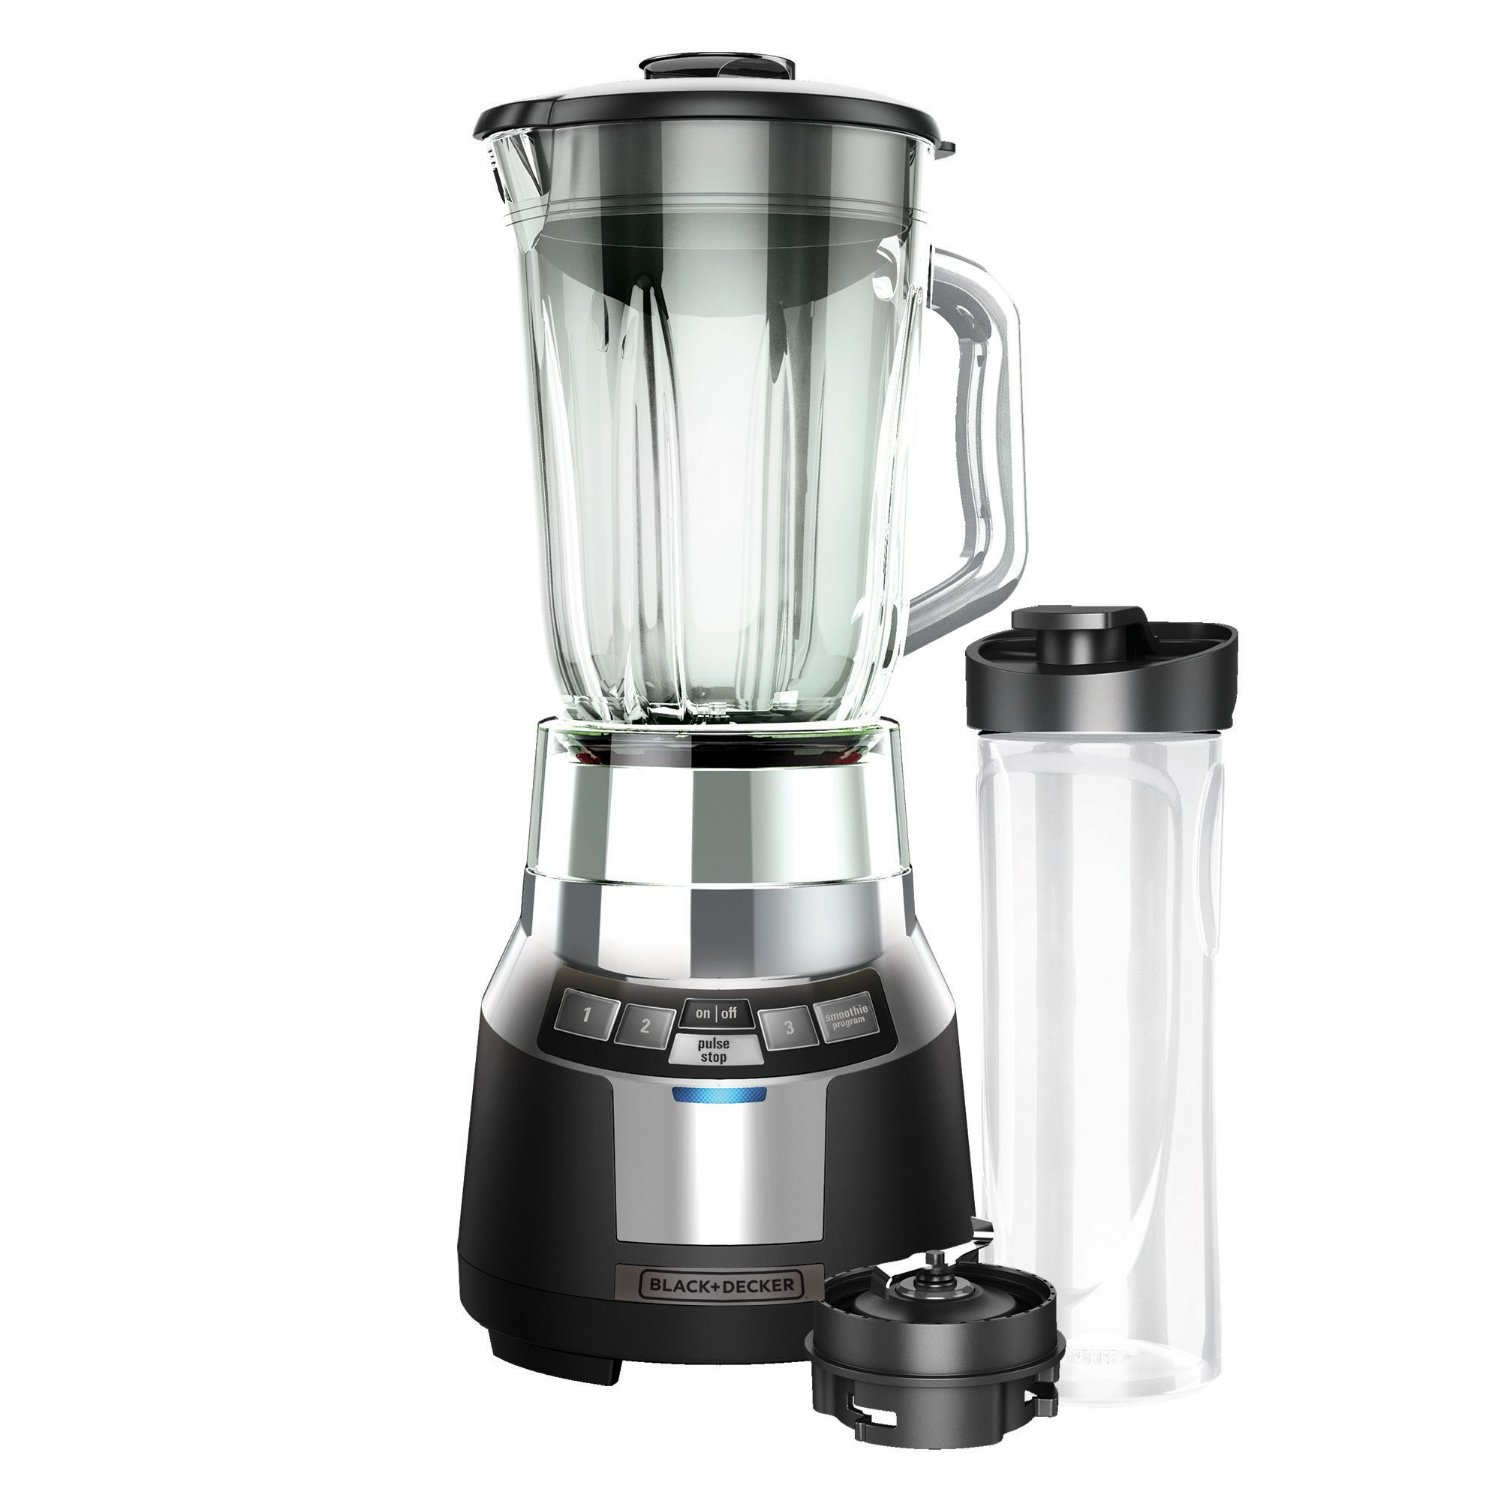 Kitchen Living Personal Drink Mixer Review